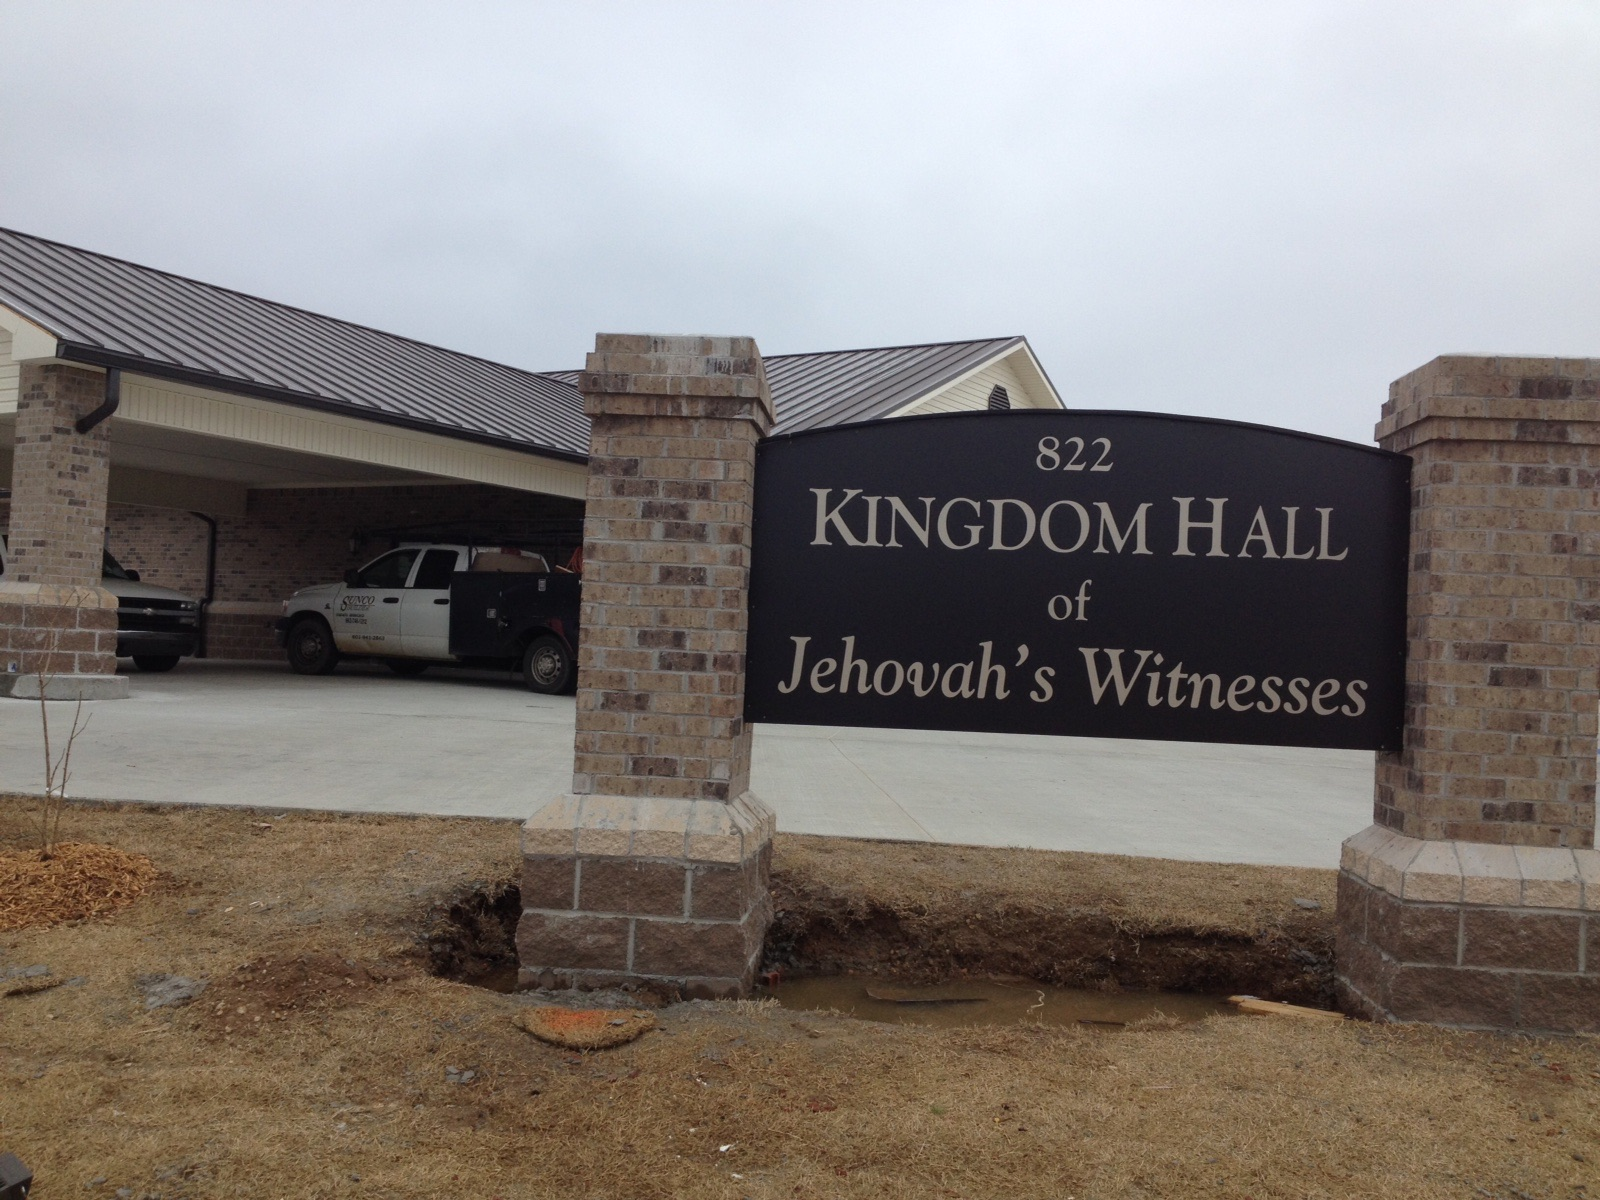 Jehovahs Witness Kingdom Hall Future of Sustainable Efficient Construction with BuildBlock ICFs.